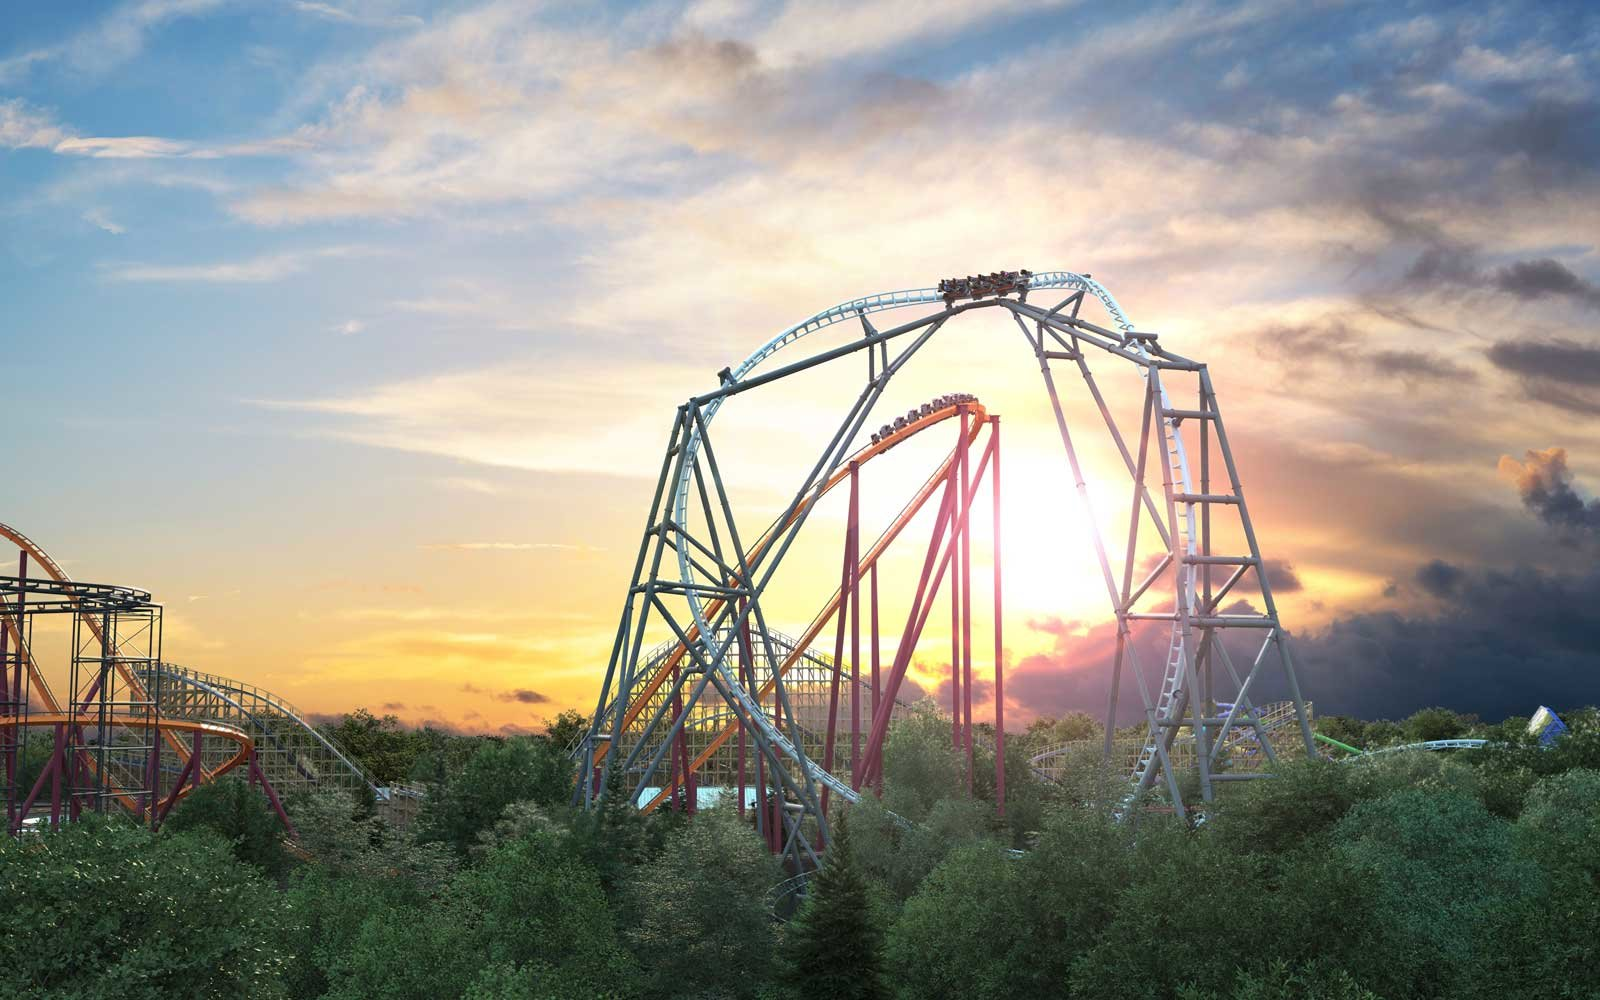 Maxx Force coaster coming to Six Flags Great America